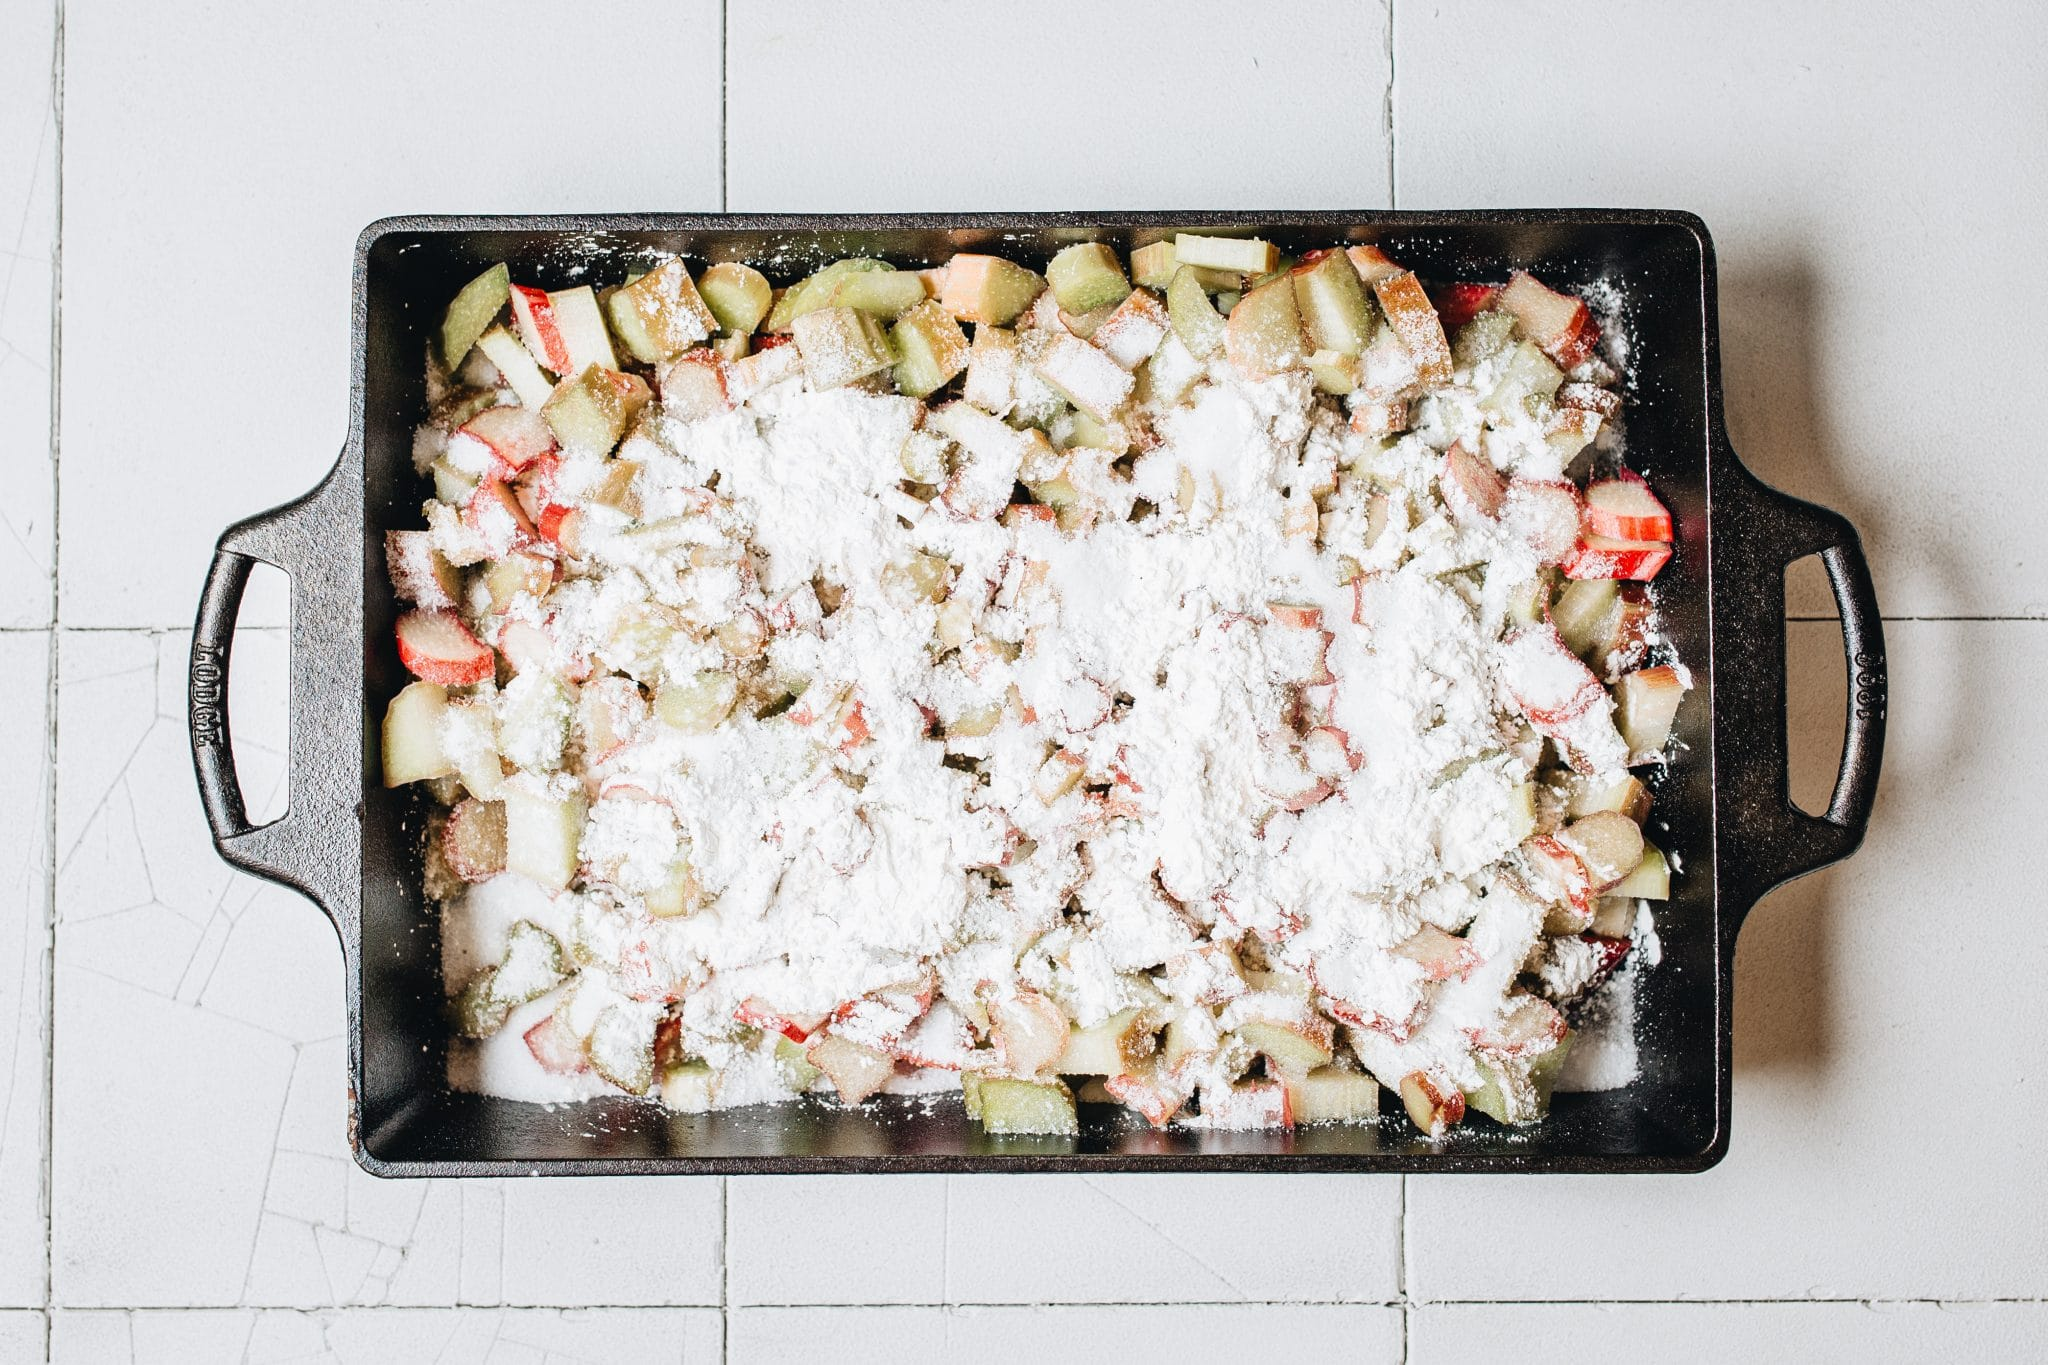 Overhead image of rhubarb cobbler ingredients in a cast iron casserole dish.